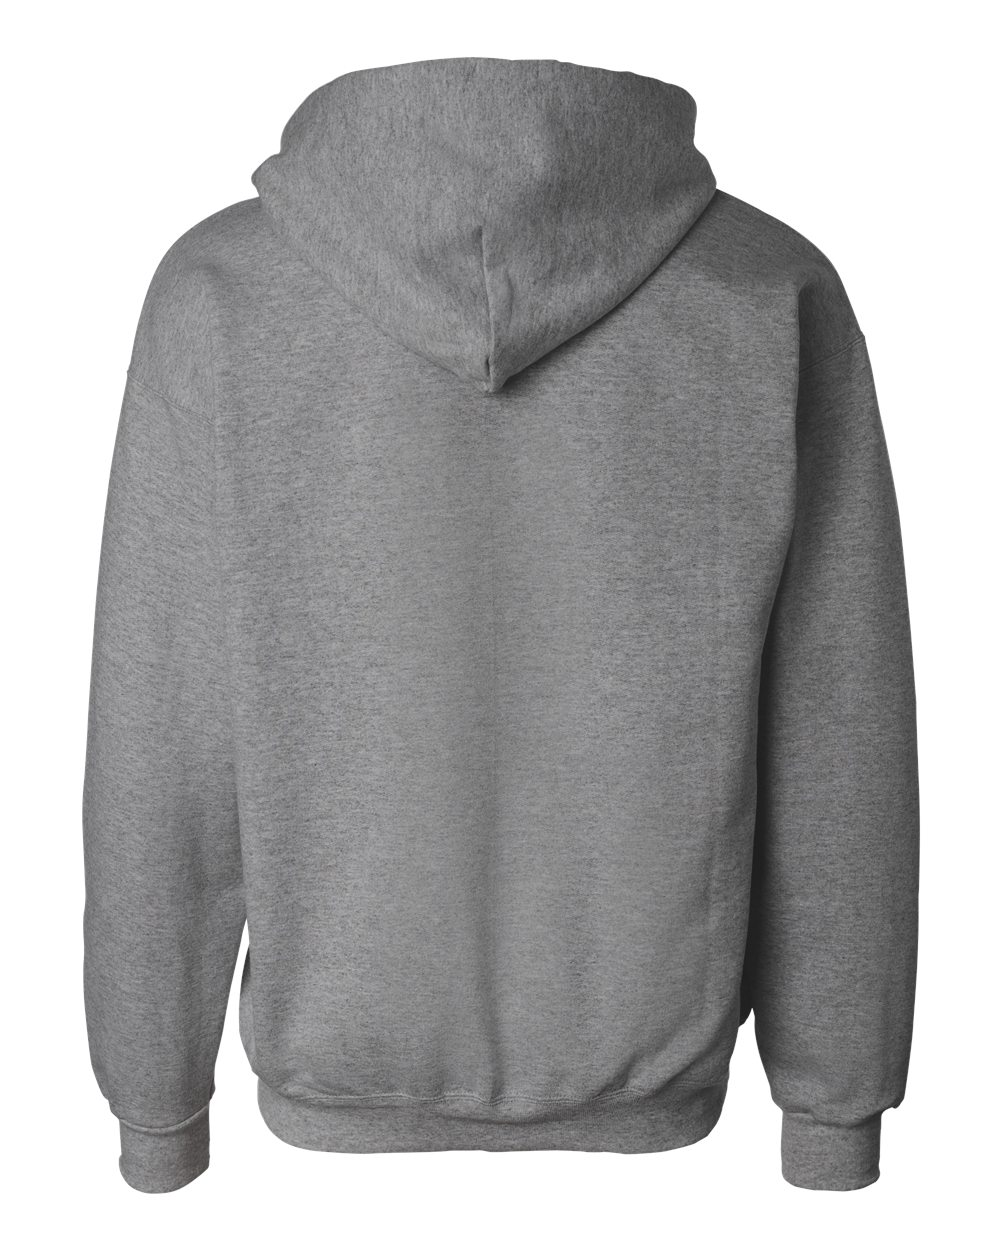 Hanes-Mens-Blank-Ultimate-Cotton-Full-Zip-Hooded-Sweatshirt-F280-up-to-3XL miniature 19